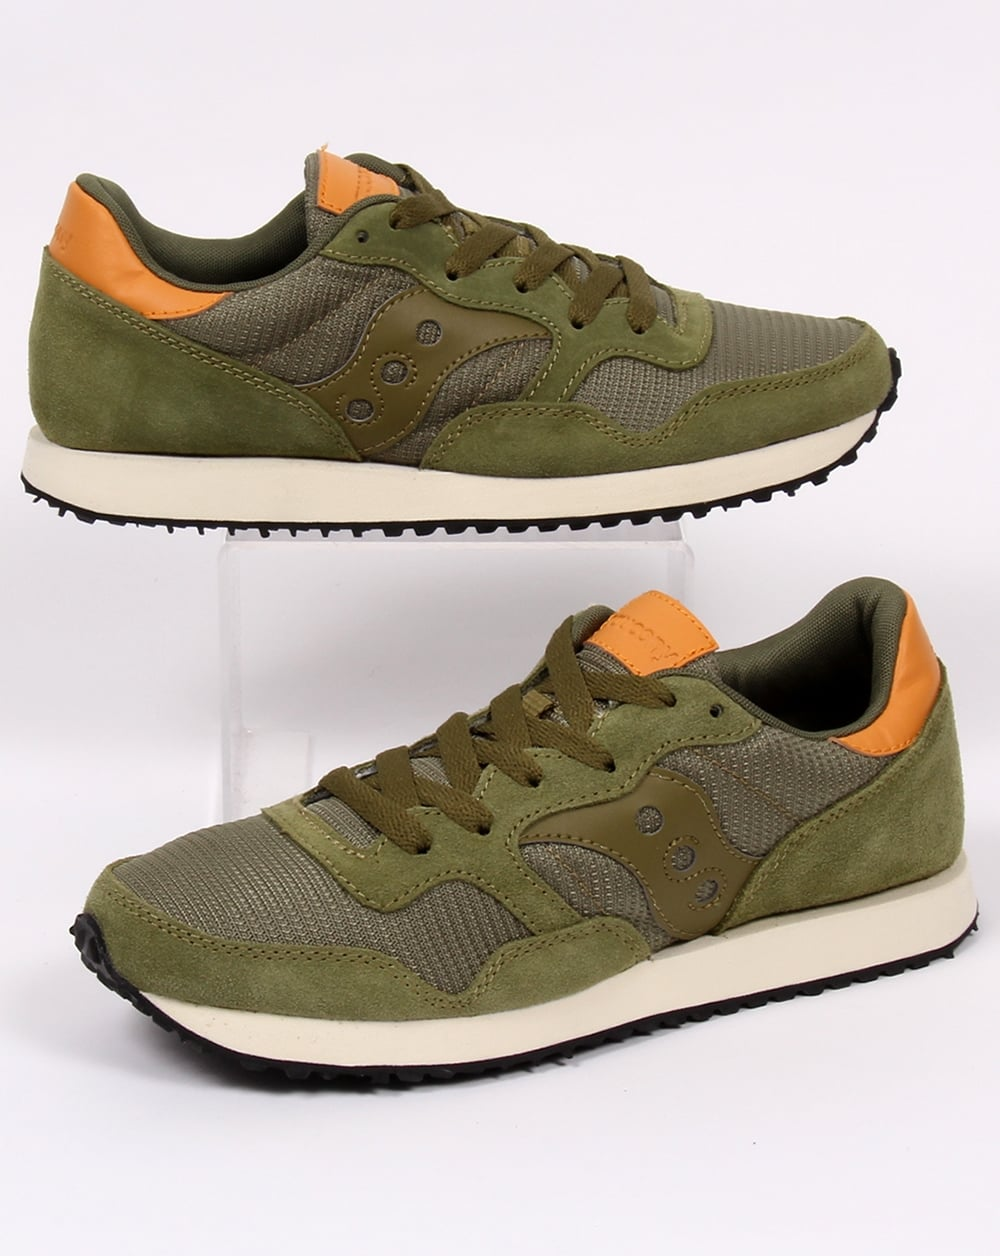 Saucony Saucony Dxn Trainers Olive Green 204541f4d0d1